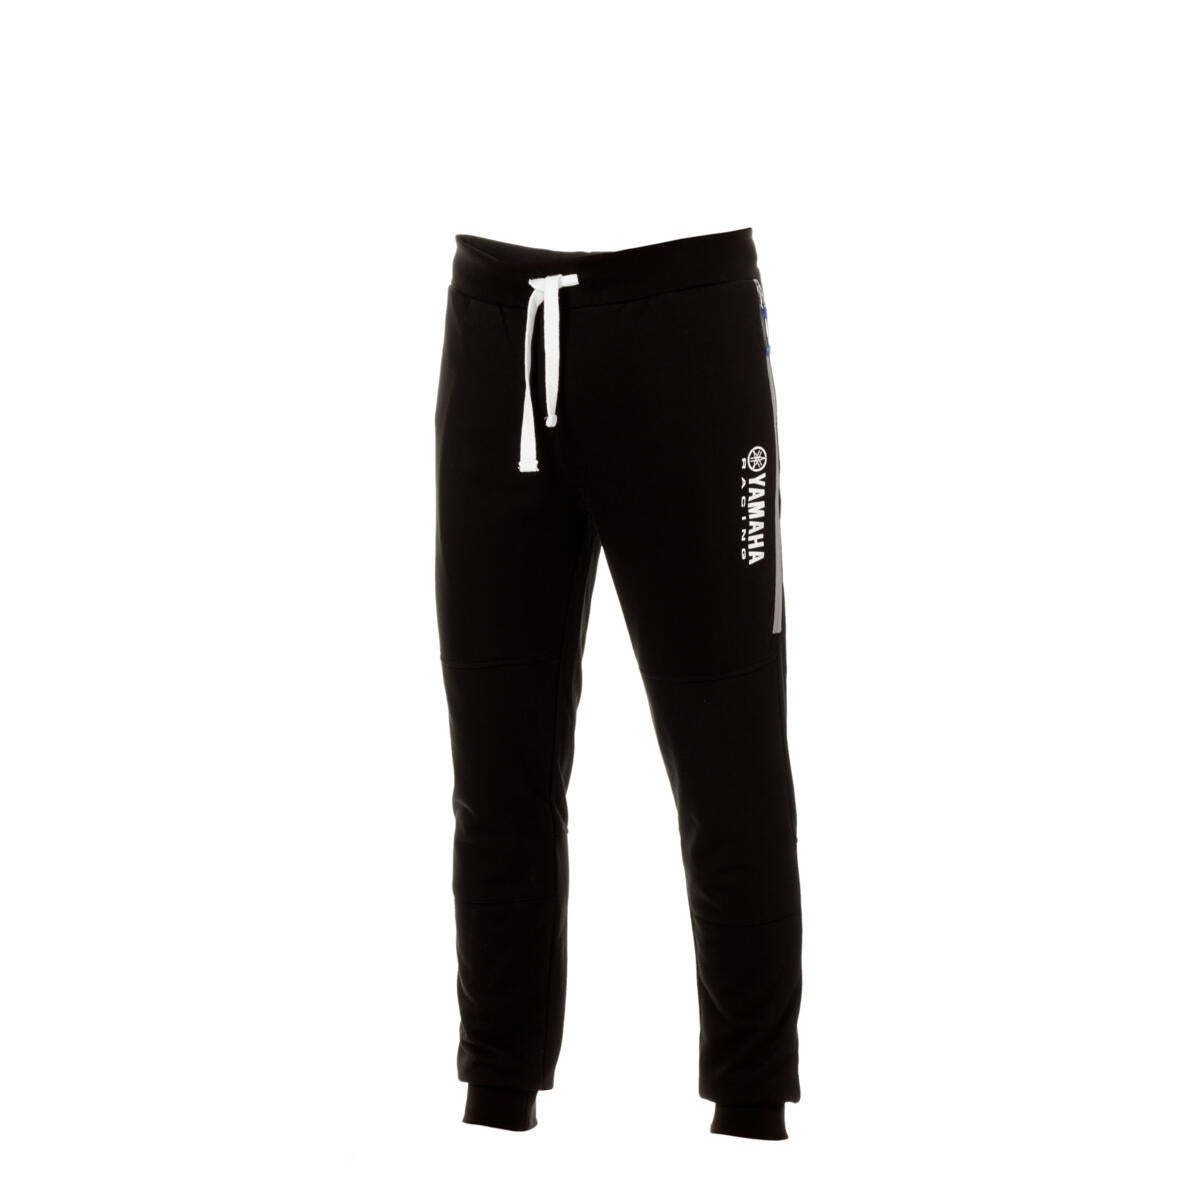 Paddock Blue Men's Casual Pants - Black